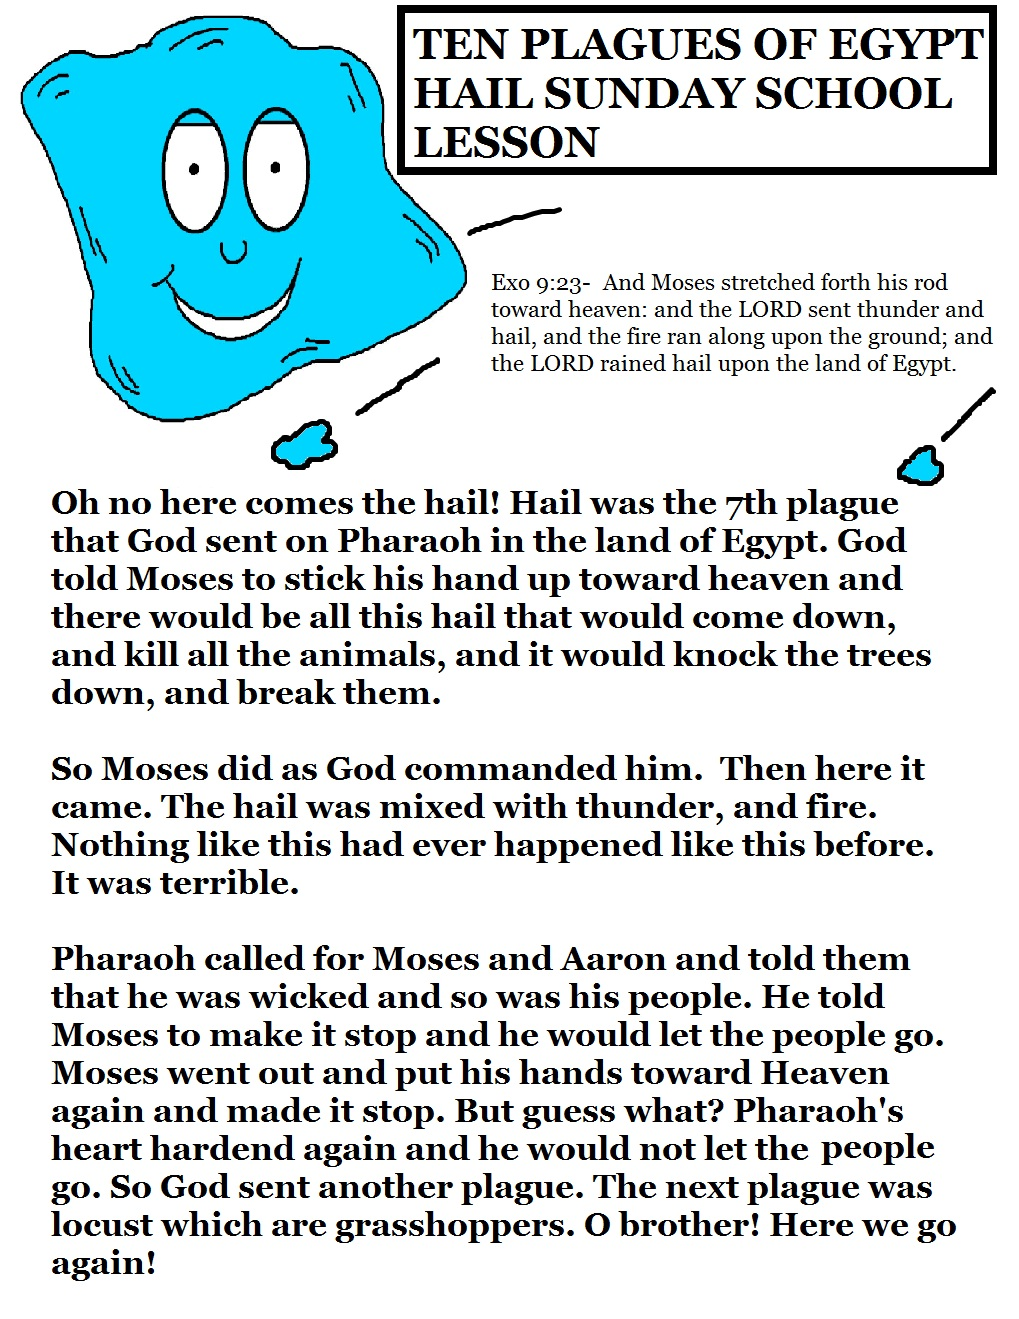 The 10 Plagues of Egypt Hail Lesson